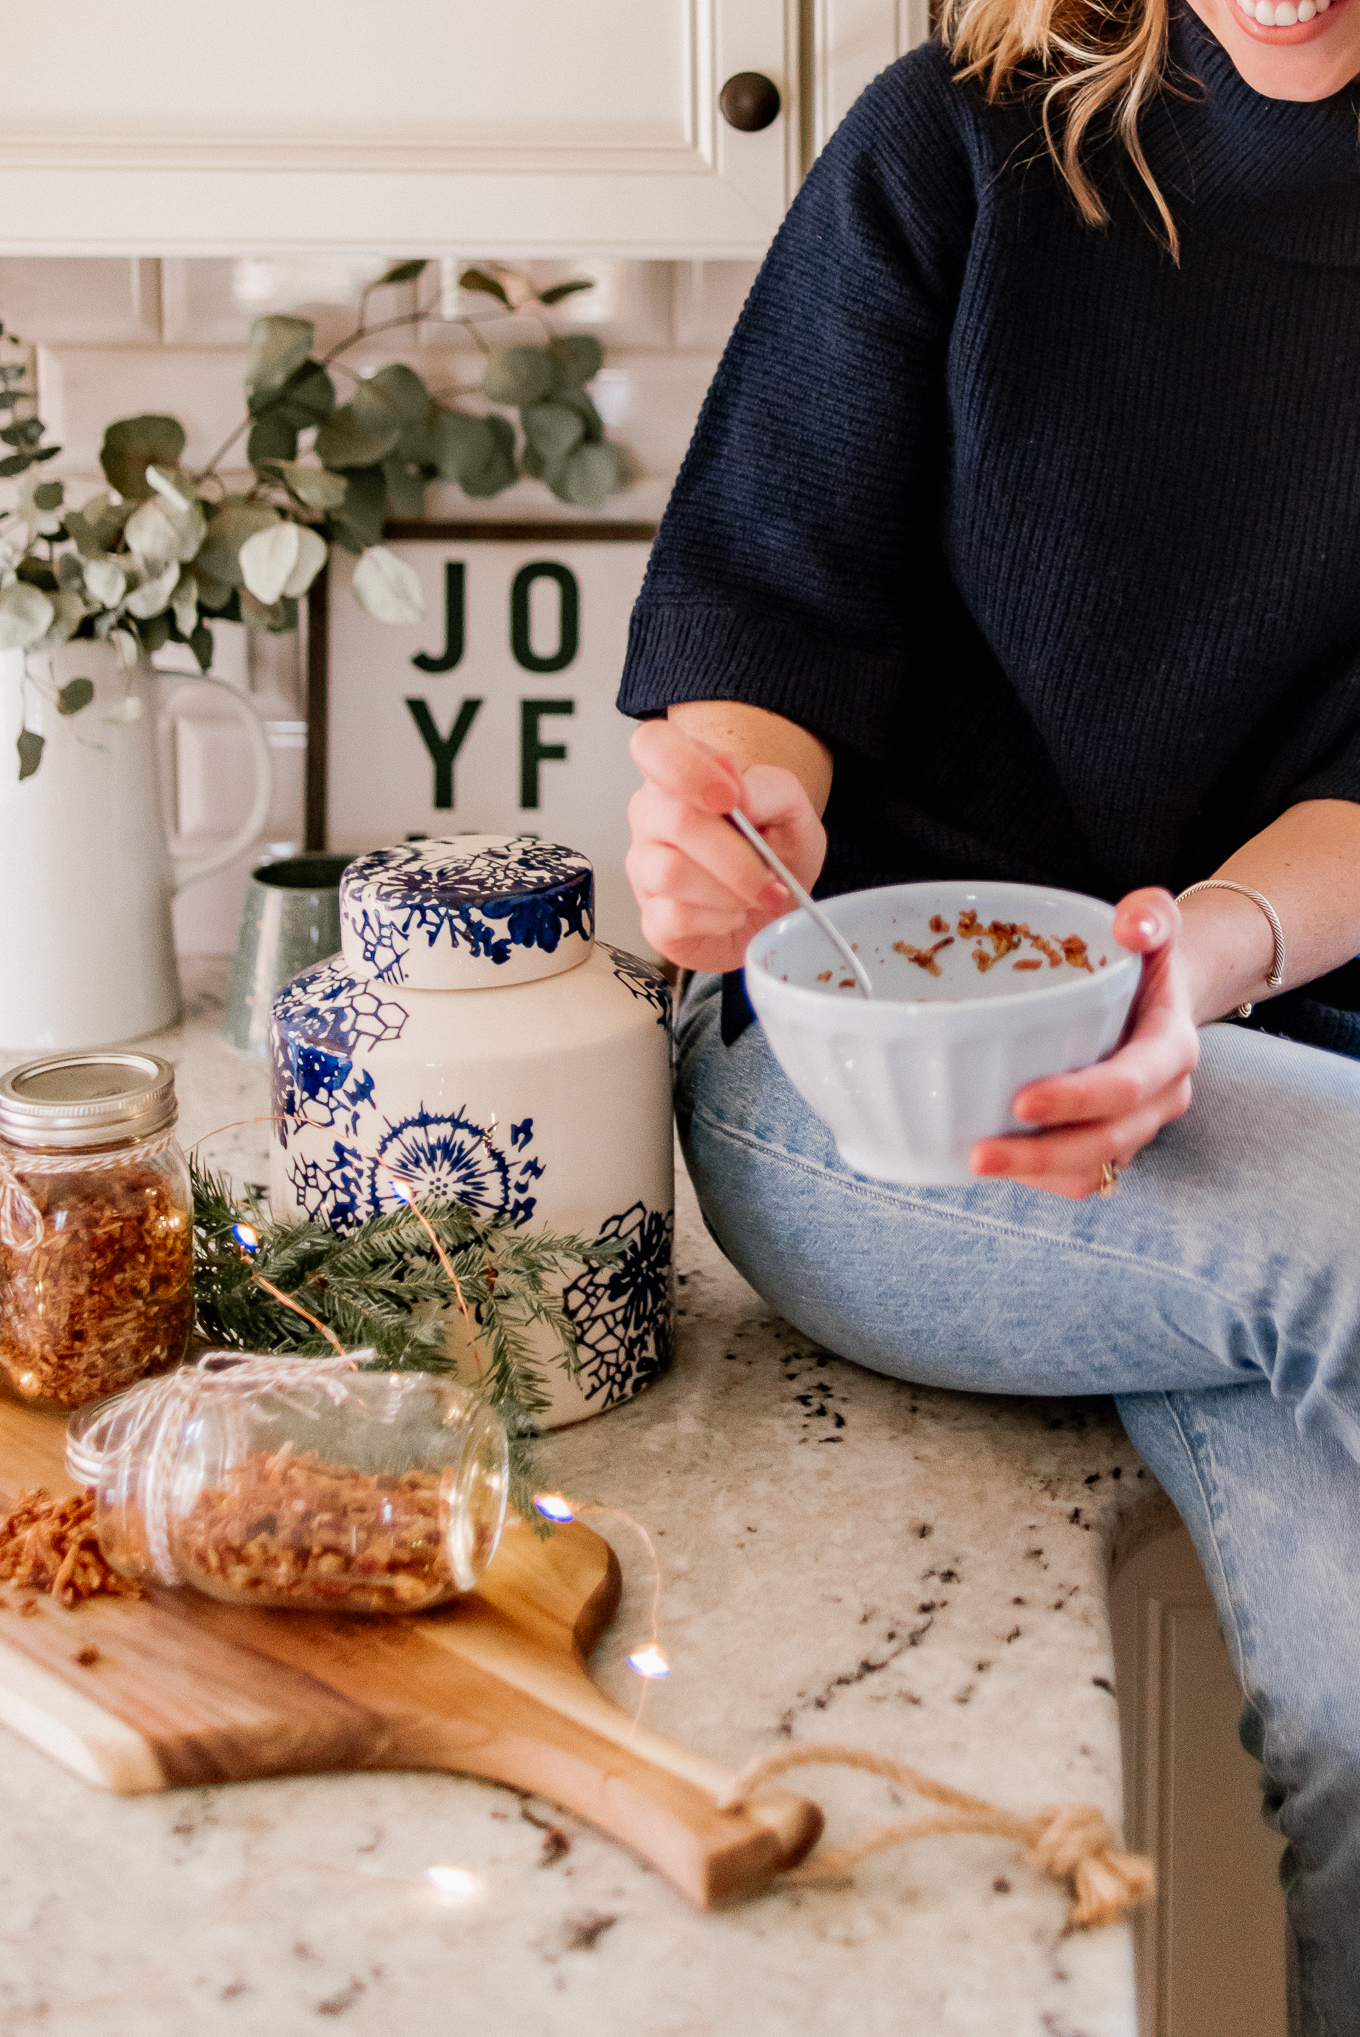 Low Carb Granola | FWTFL Low Carb Day Granol Recipe | Holiday Treat for Neighbors and/or Hostess Gift | Louella Reese